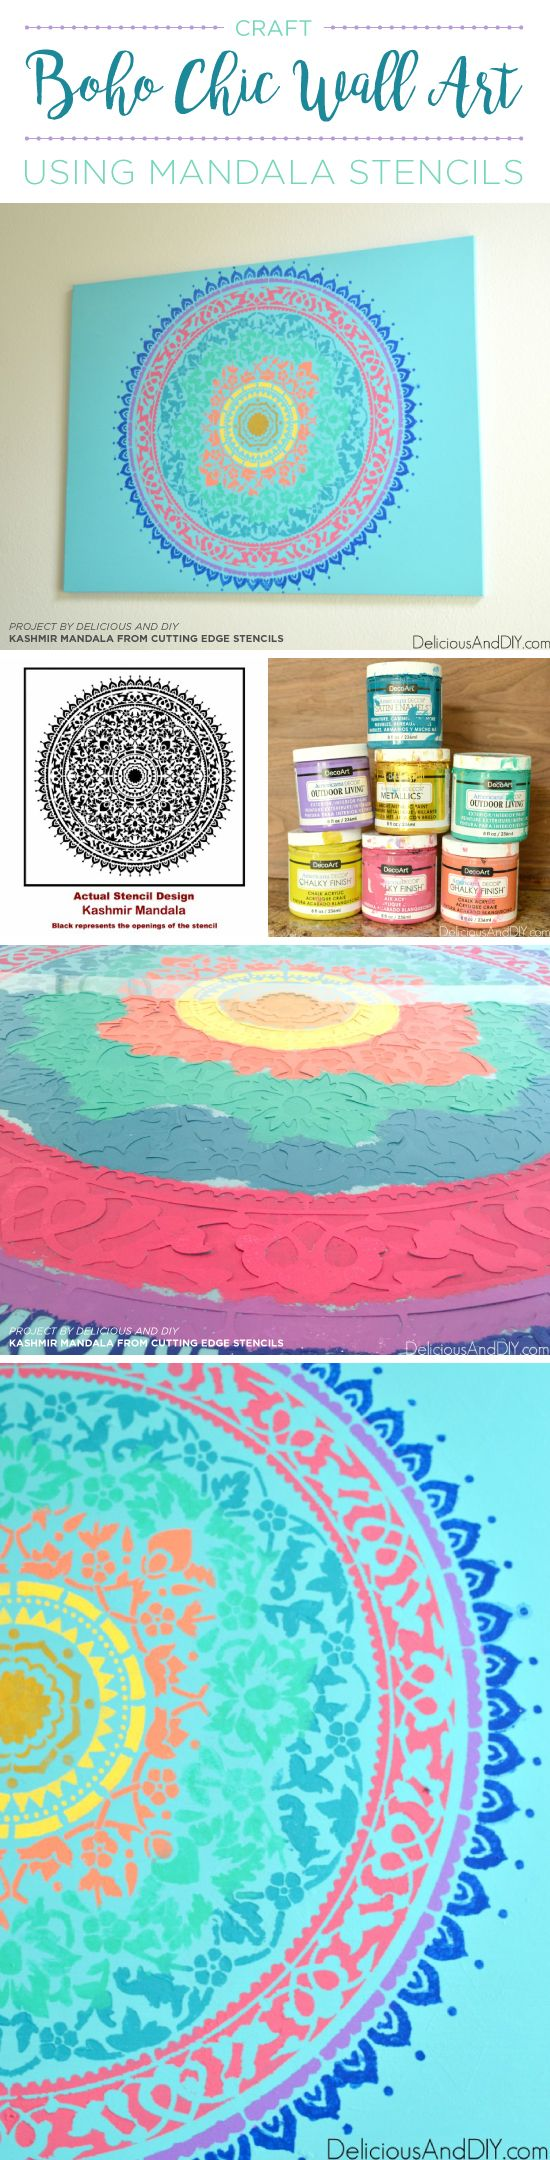 395 best stenciled canvas wall art images on pinterest cutting cutting edge stencils shares how to craft boho chic wall art using the kashmir mandala stencil amipublicfo Choice Image